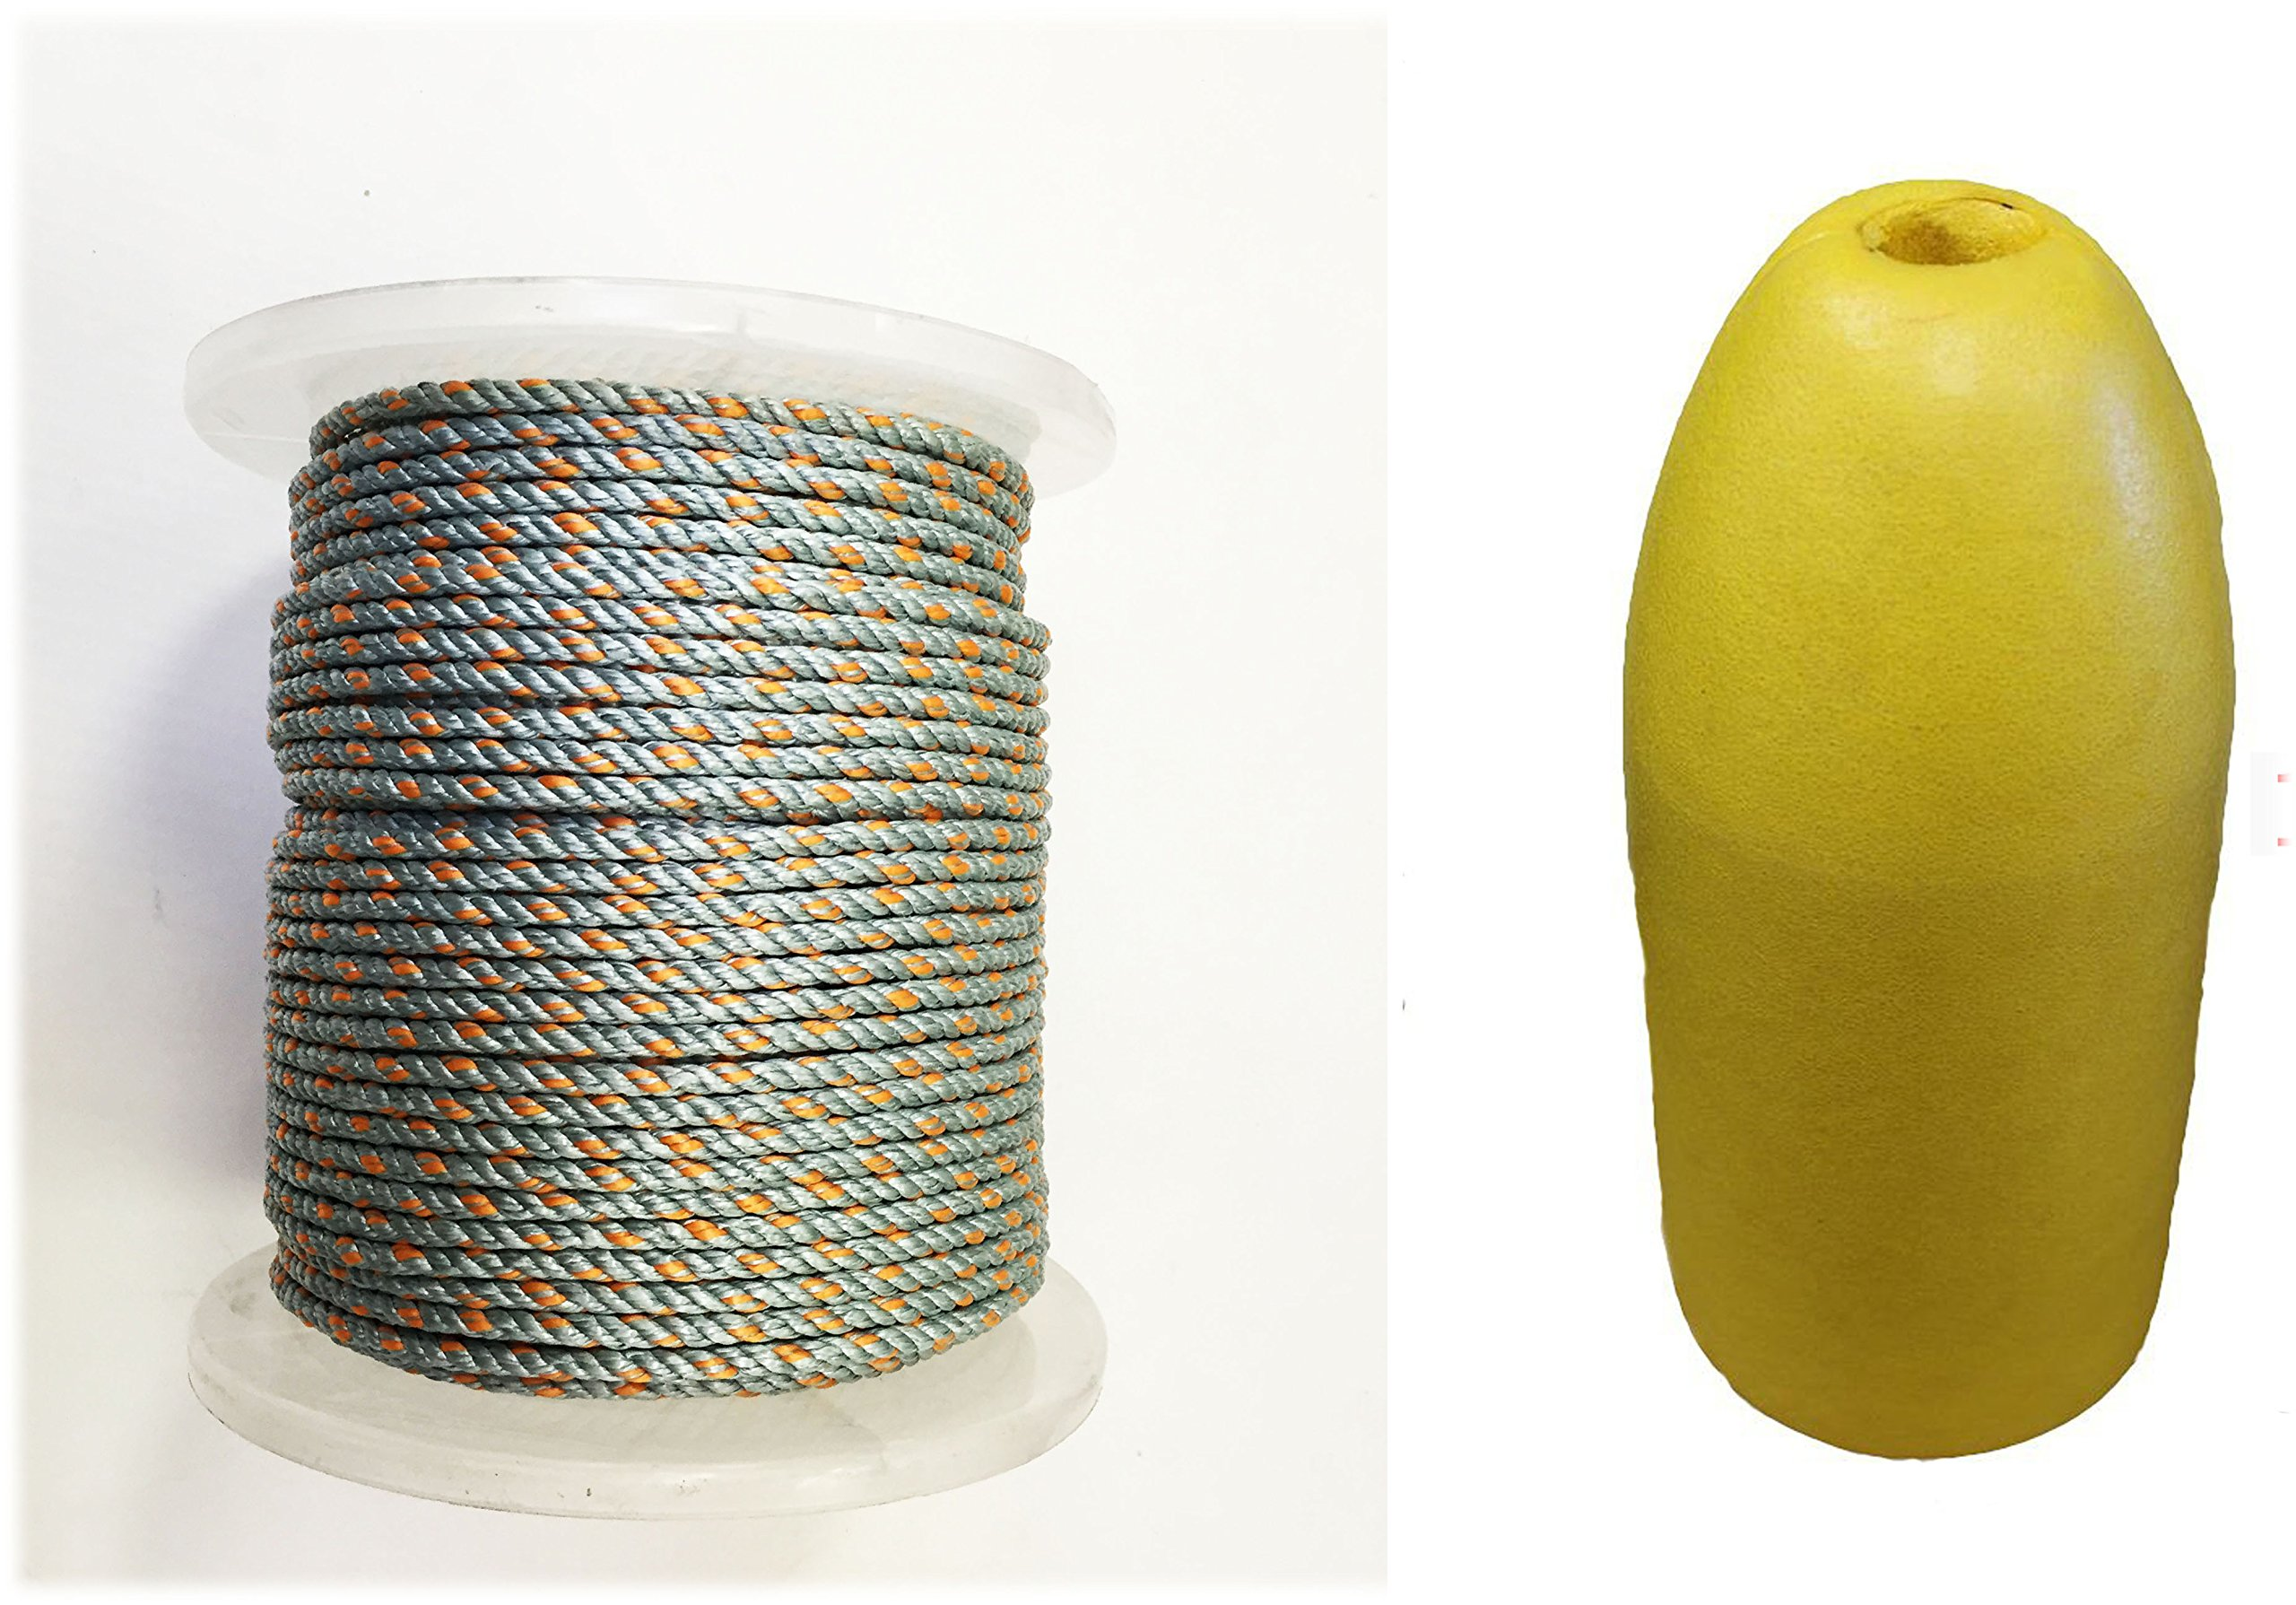 KUFA Sports 1/4 Diameter/400' Lead Core Rope & 11'' Yellow Float Combo by KUFA Sports